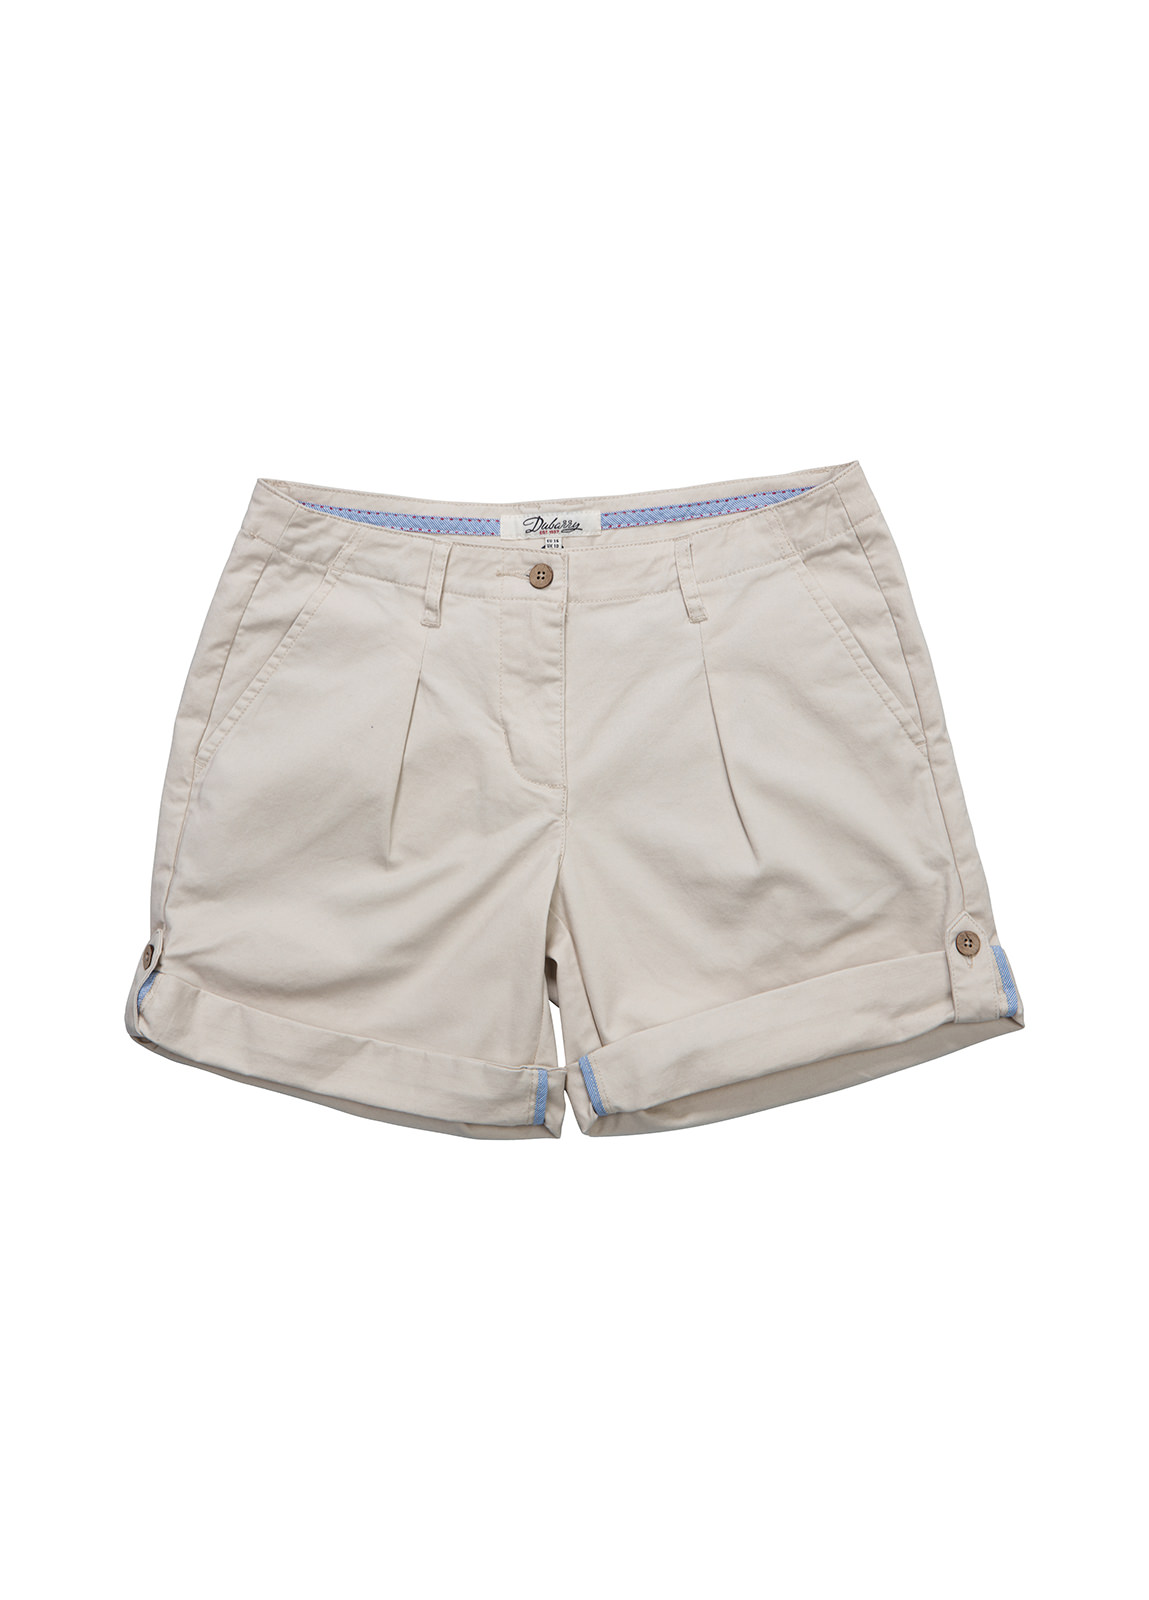 Dubarry_ Summerhill ladies shorts - Oyster_Image_2